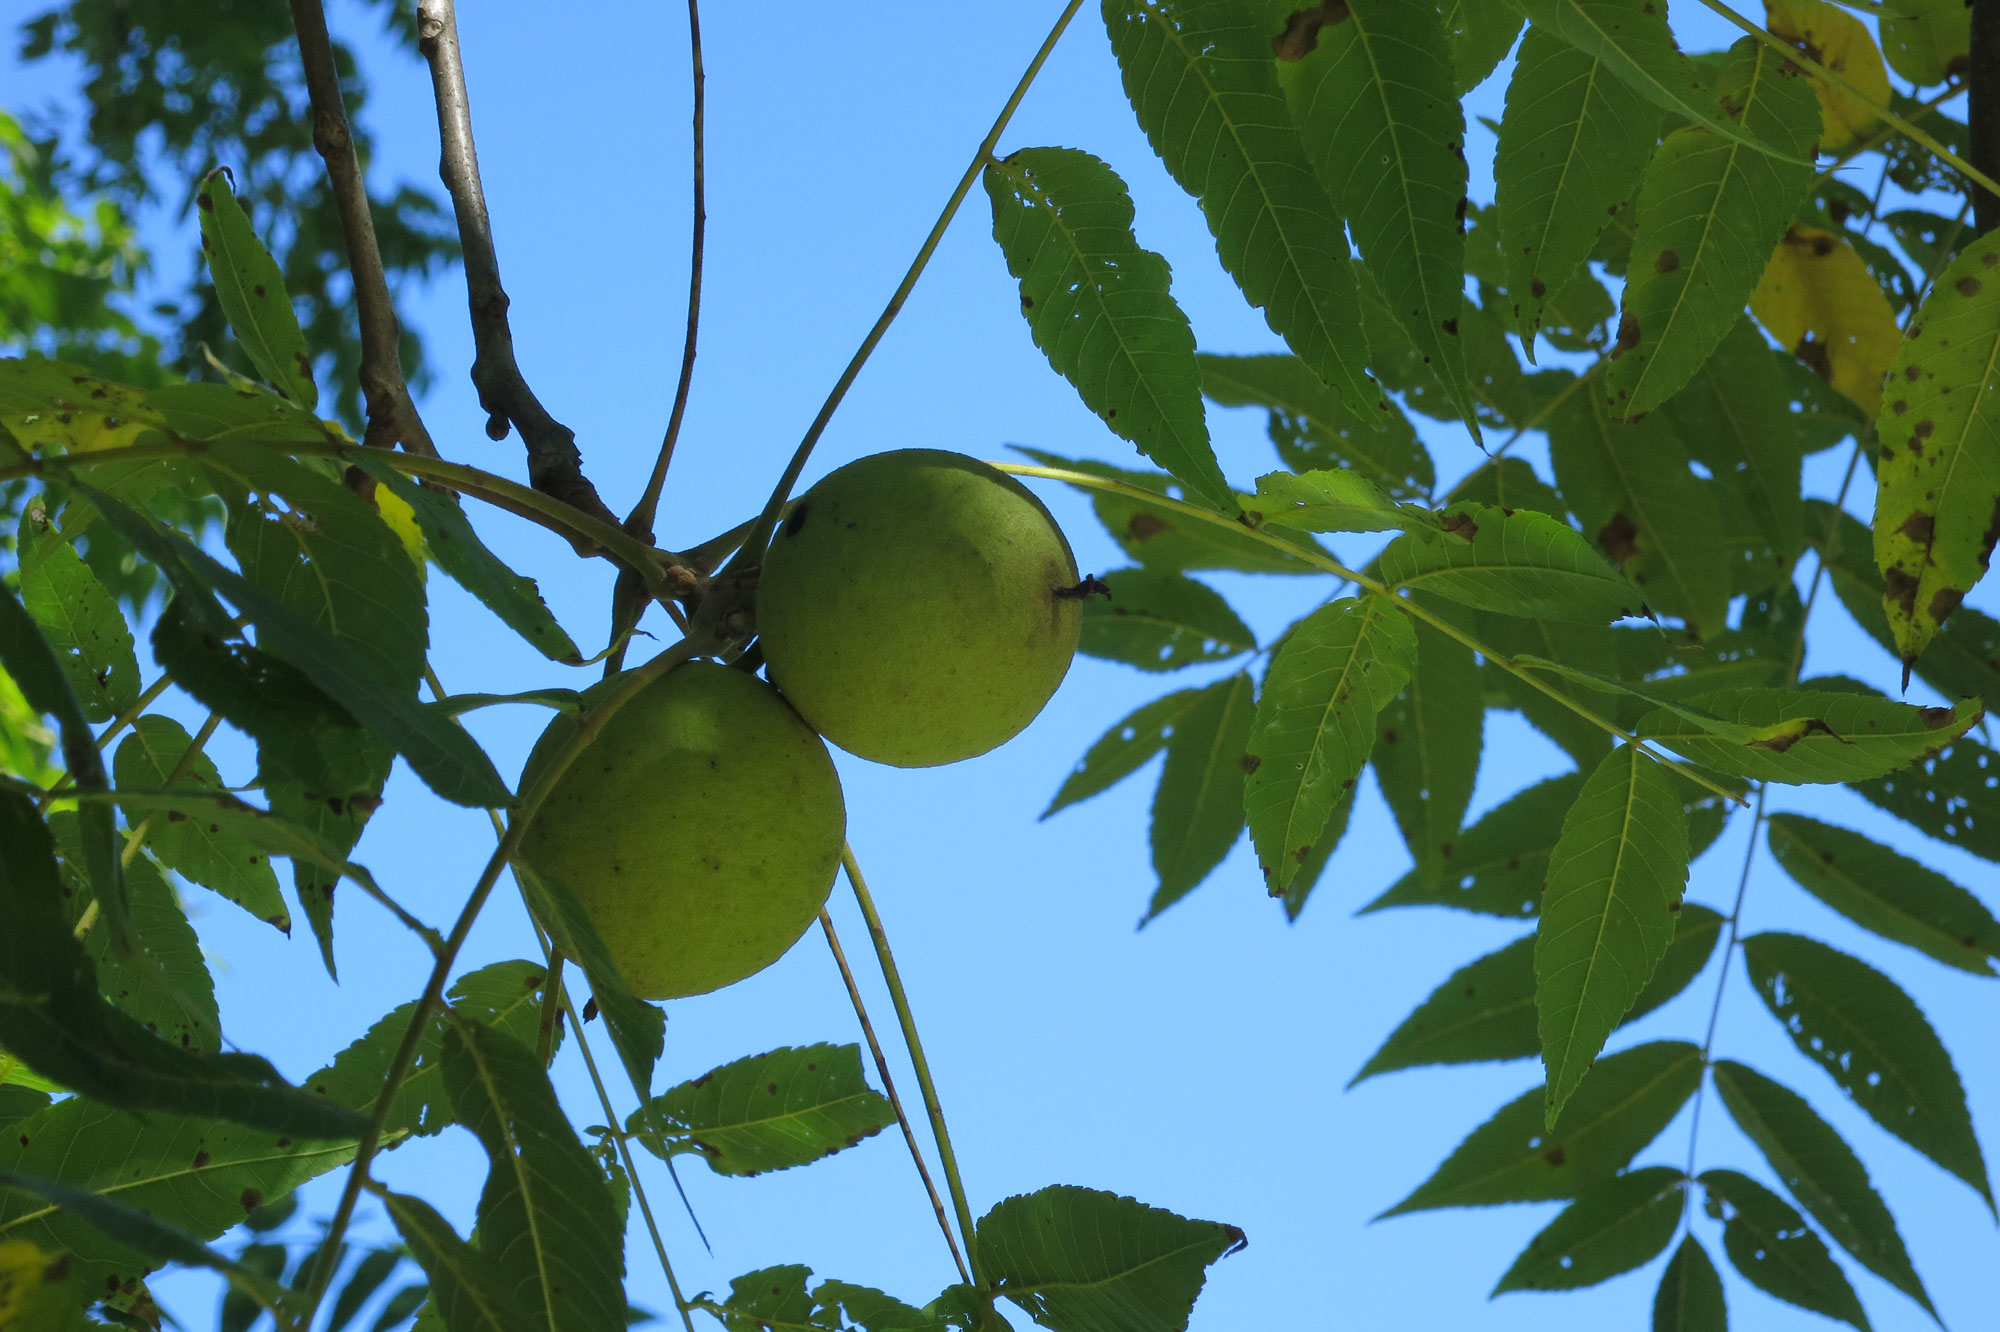 Finding the Black Walnut – The Academy of Natural Sciences